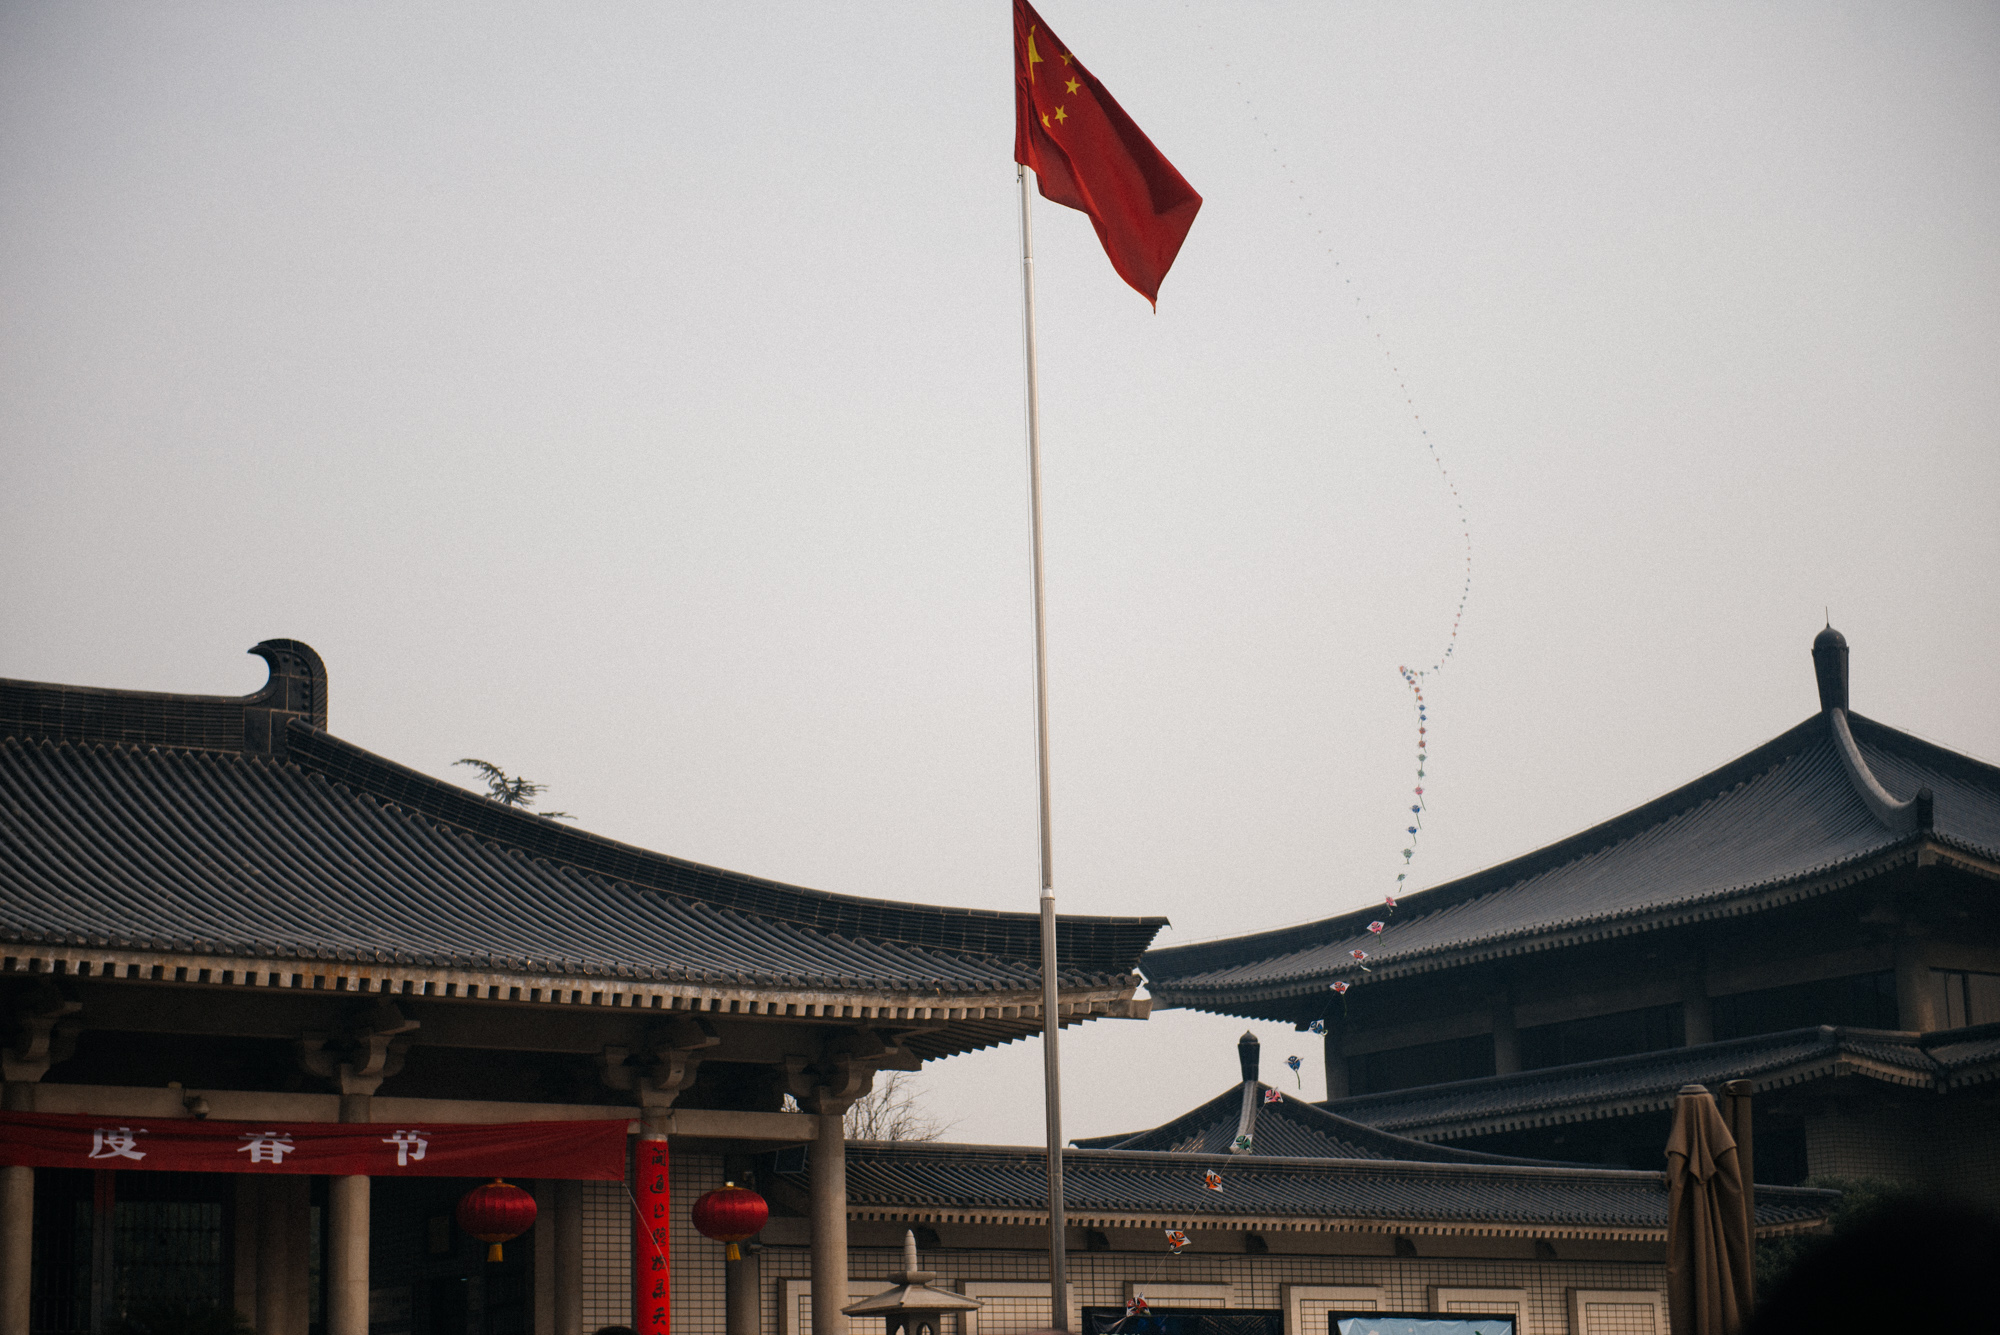 On Lunar New Year's day, someone flies a kite into infinity in front of the museum.